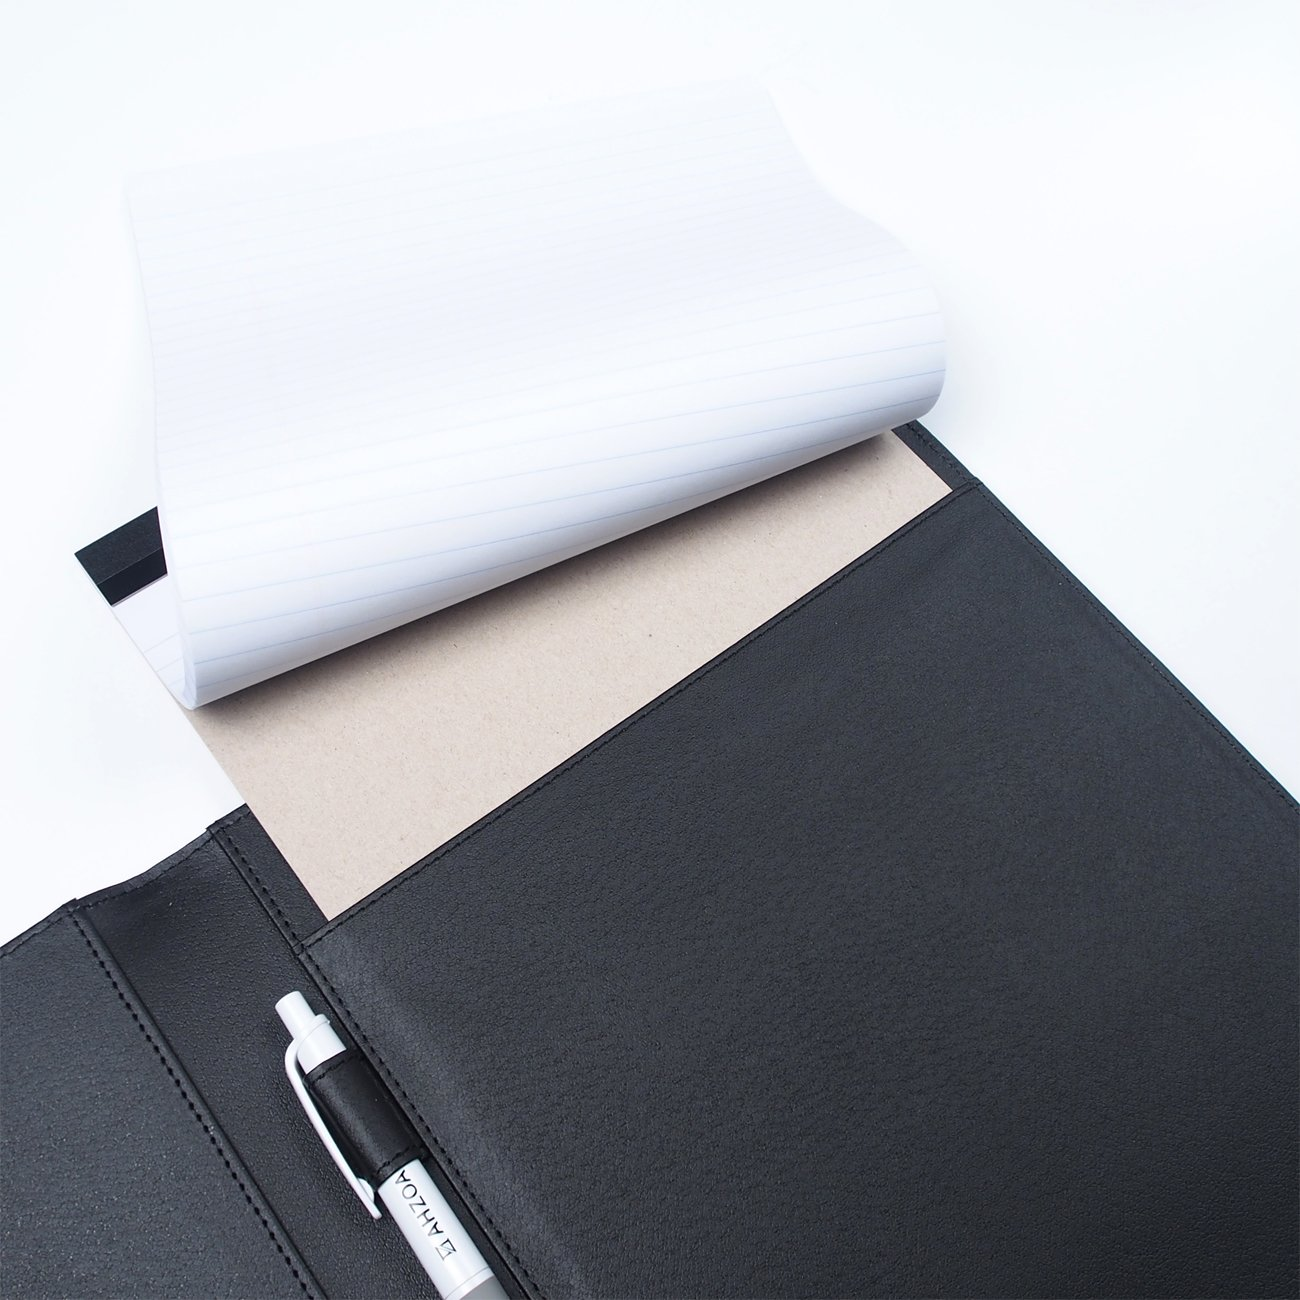 AHZOA 4 Pockets A4 Size Memo Padfolio S3 with Mechanical Pencil, Including 8.27 X 11.7 inch Legal Writing Pad, Synthetic Leather Handmade 9.84 X 12.99 inch Notepad Clipboard (Black) by AHZOA (Image #5)